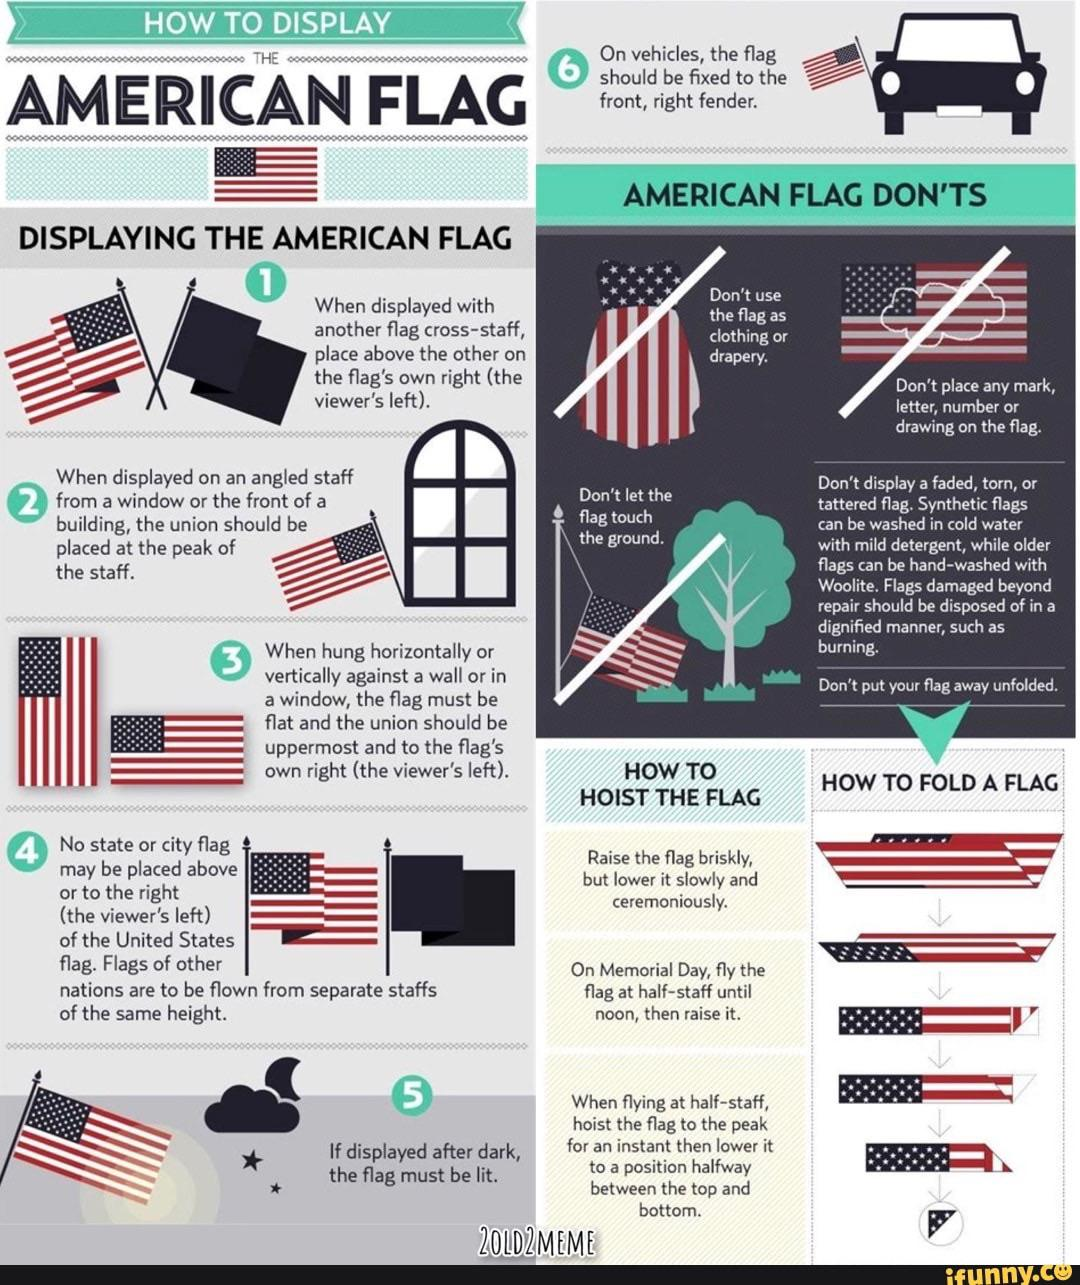 Guide on how to display the American flag 🇺🇸